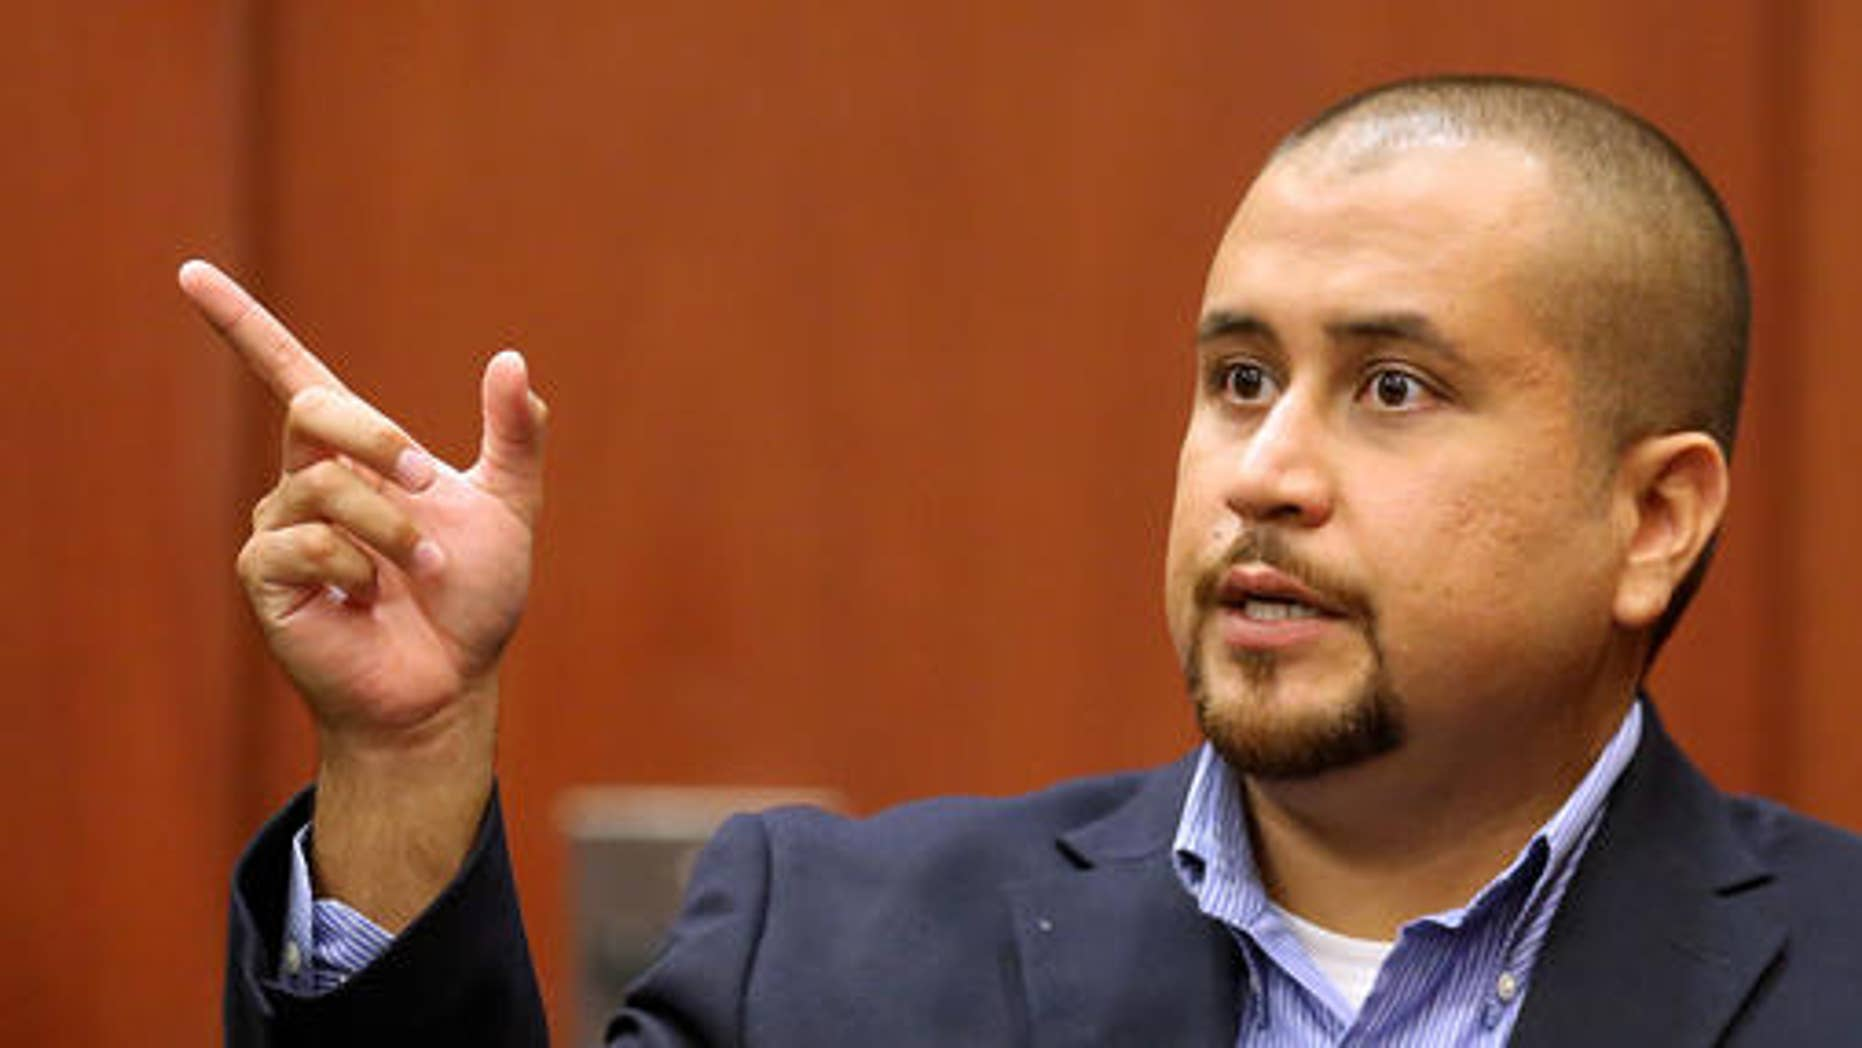 FILE - In this Sept. 22, 2015 file photo, George Zimmerman gestures during his testimony at a hearing for accused shooter Matthew Apperson in Seminole circuit court in Sanford, Fla.   Testimony begins Tuesday, Sept. 13, 2016 in Apperson's attempted second-degree murder trial. Authorities say he shot at Zimmerman during a traffic incident last year. (Joe Burbank/Orlando Sentinel via AP, Pool)